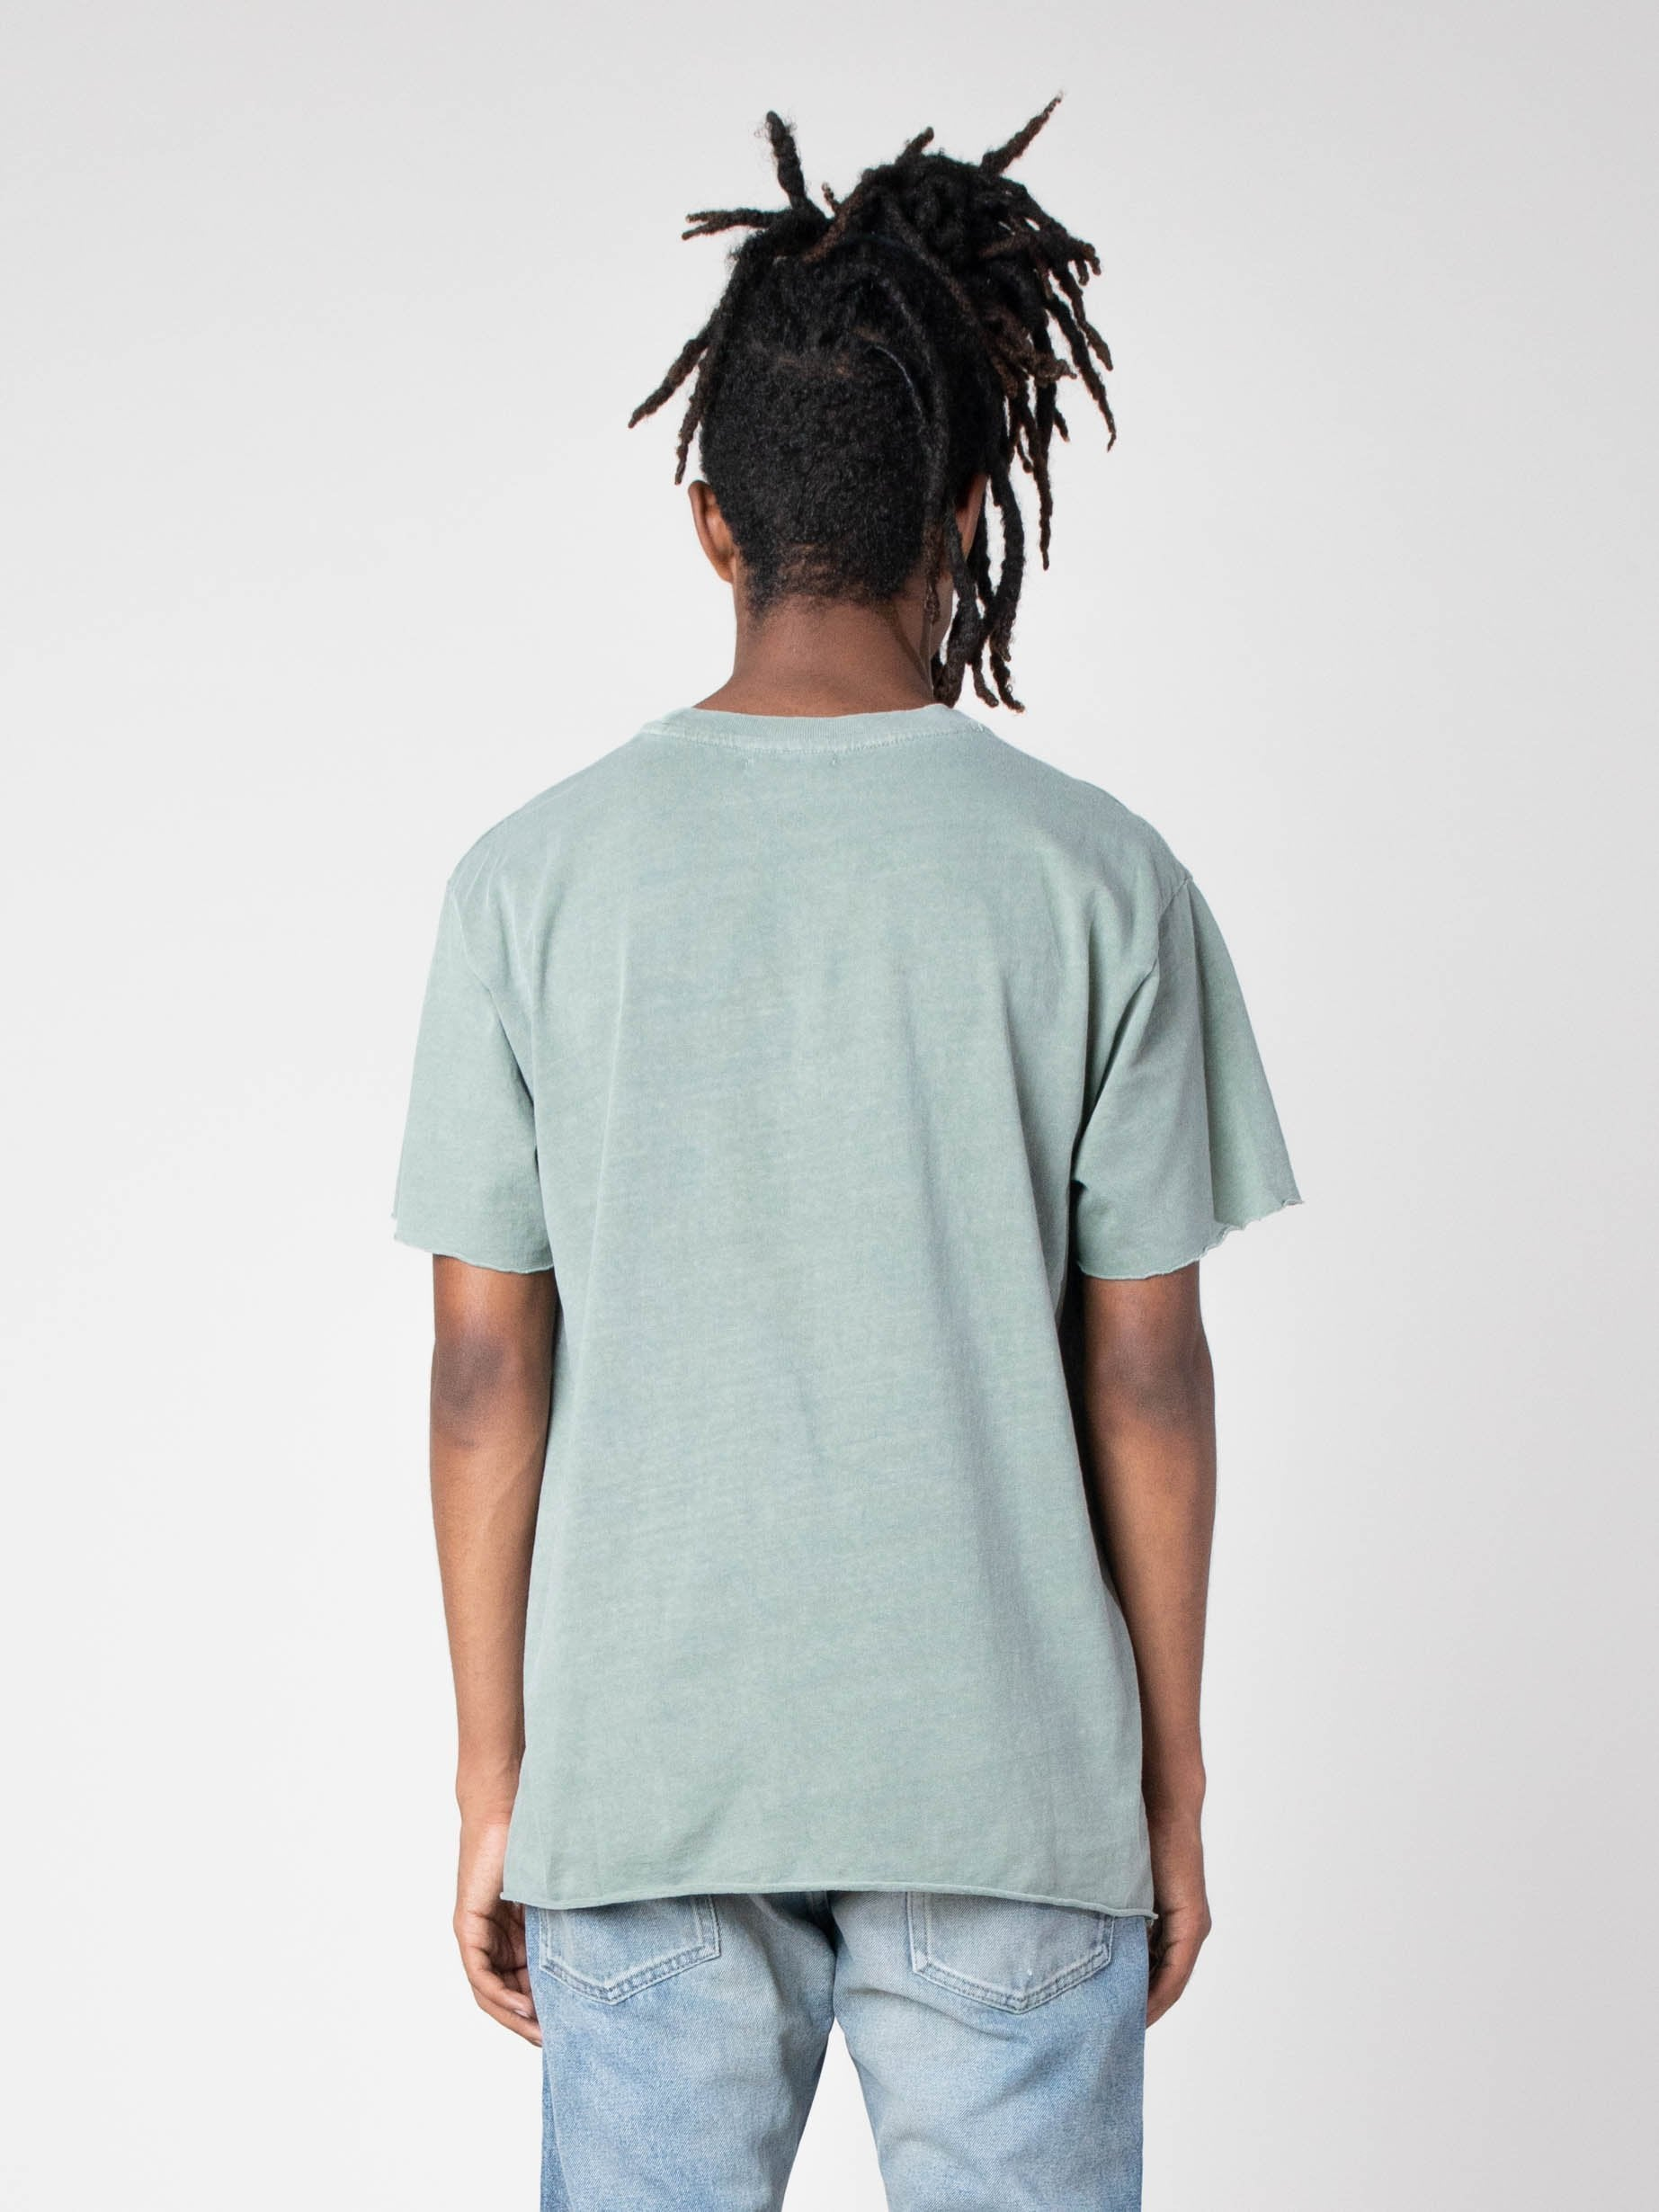 Spruce Anti-Expo T-Shirt 6